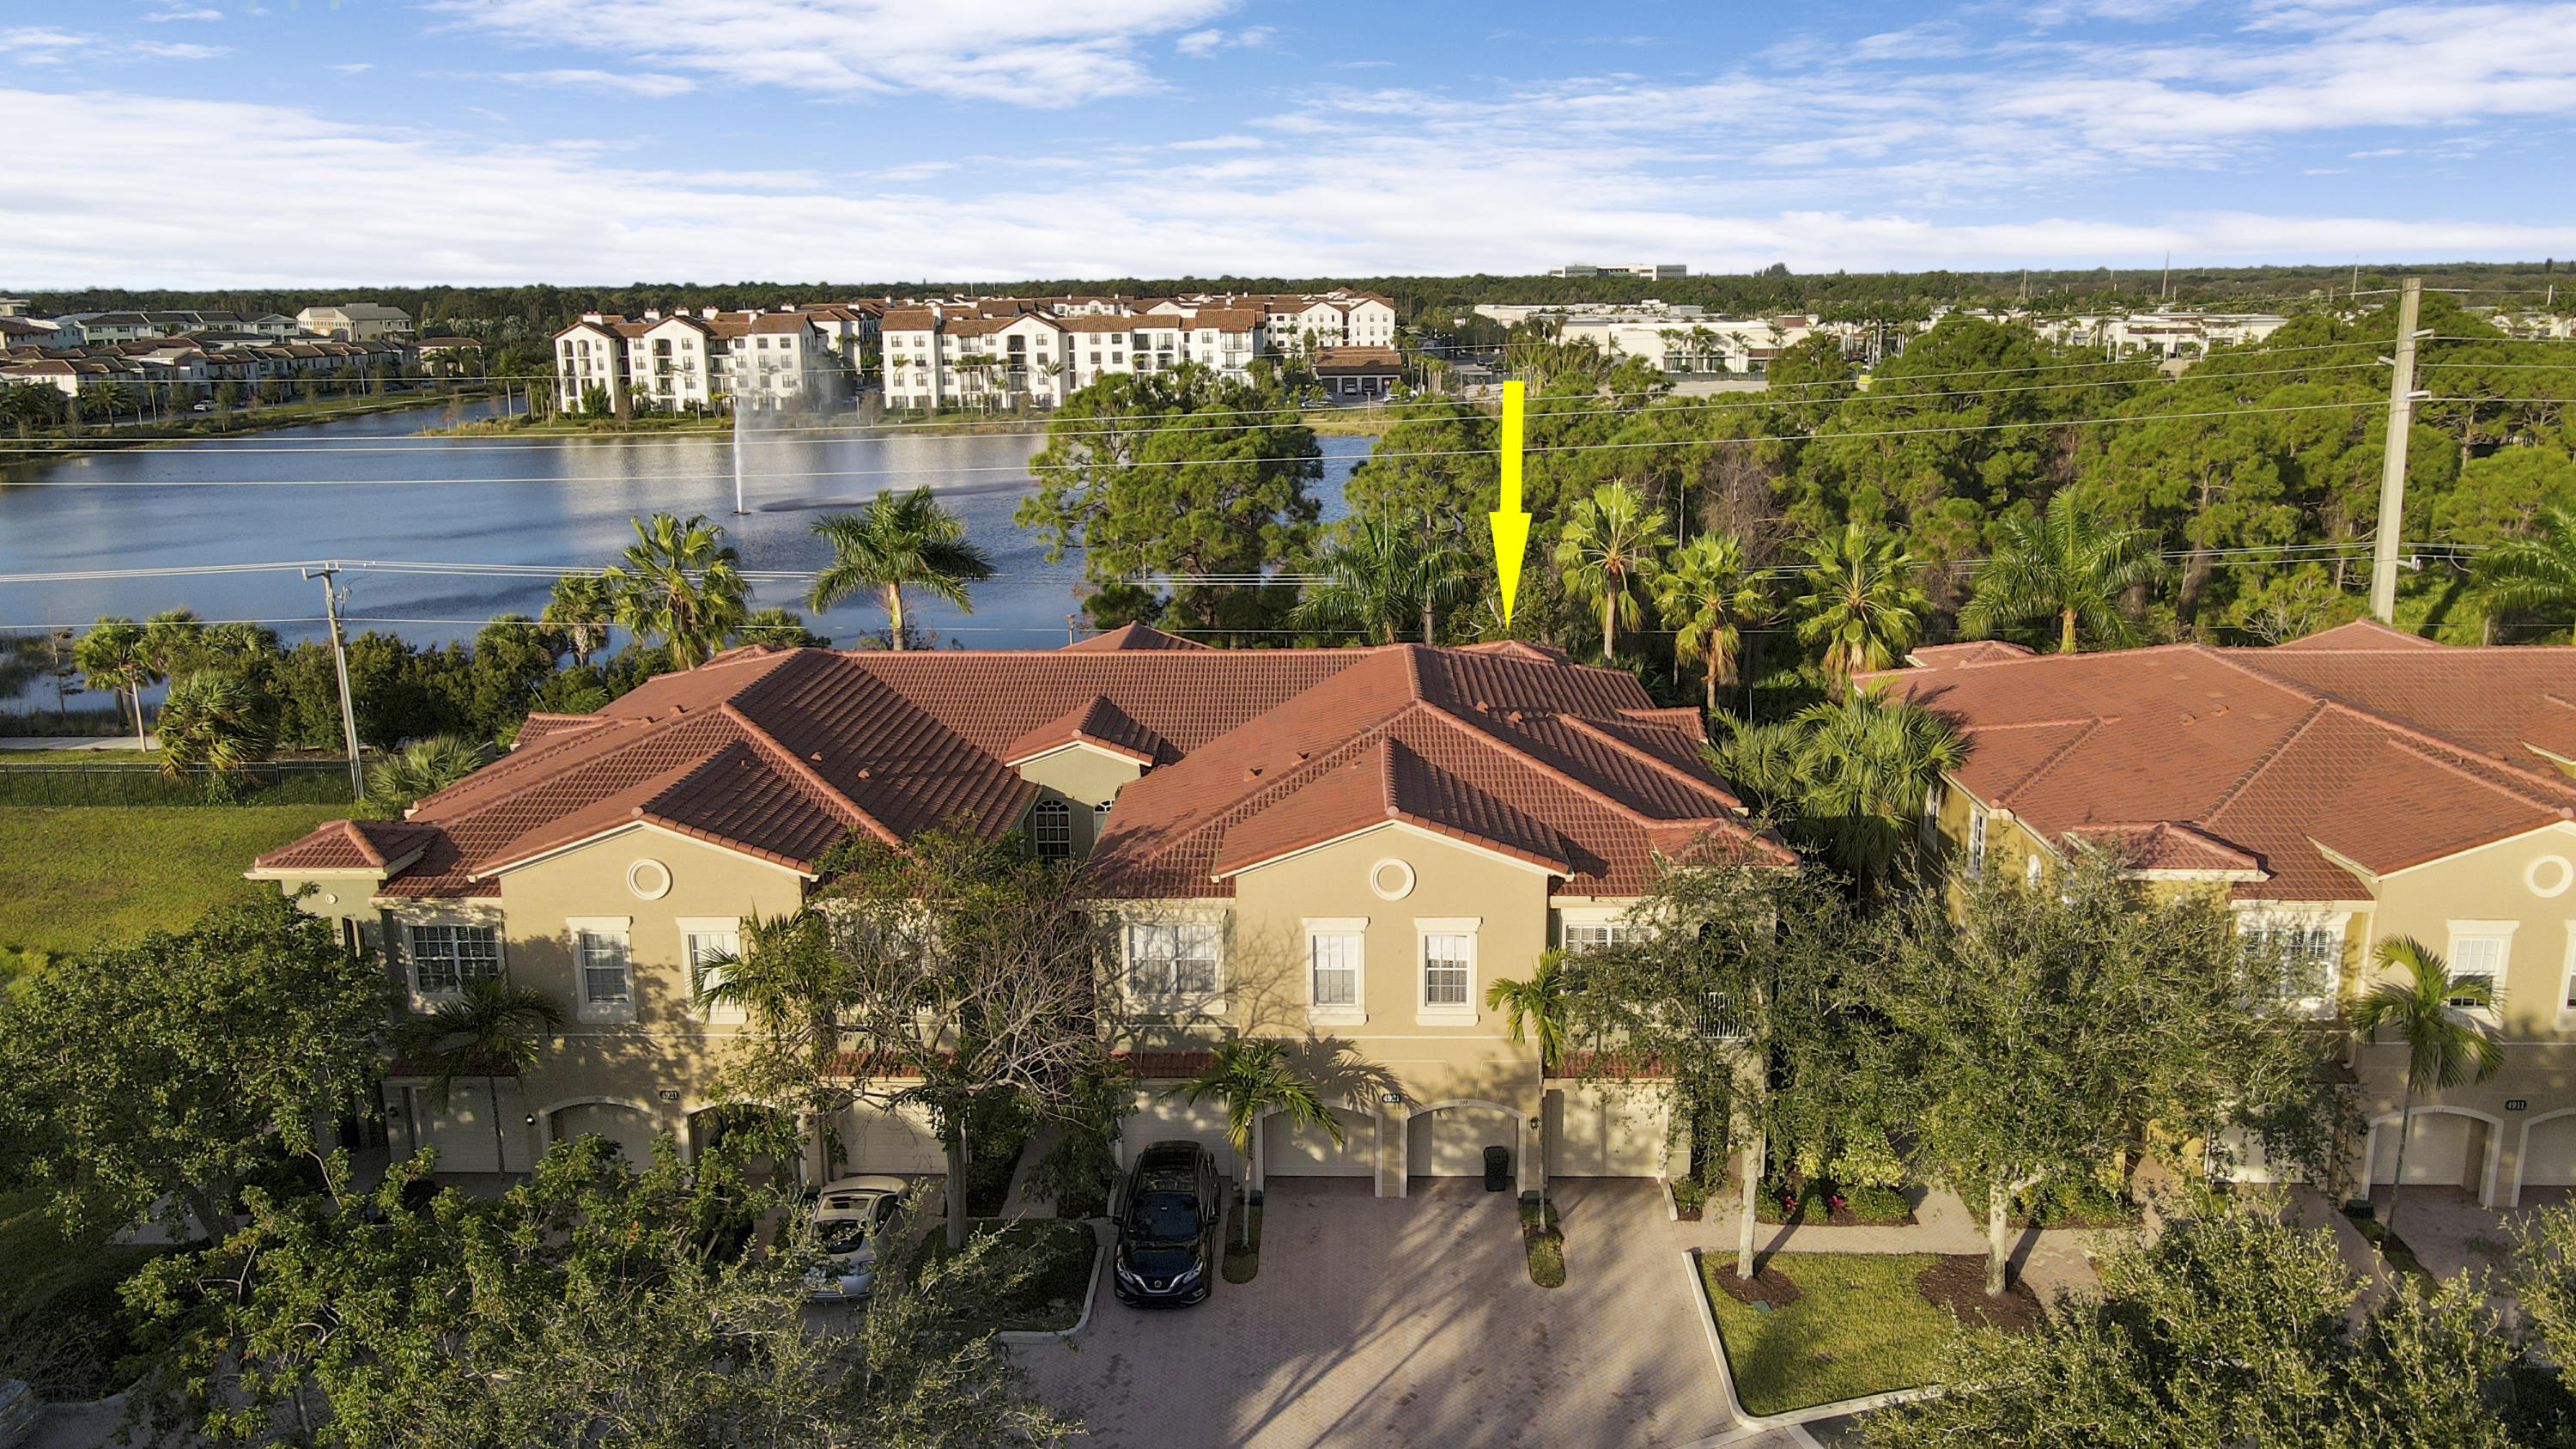 Ideally located with direct lakeside path to Alton & down the street from Abacoa Town Center, this top floor condo (2nd level with stairs) has pristine sunset & water views. This open floor plan has a balcony and has just been repainted and thoroughly cleaned. The condo offers two bedrooms and a full den that can be a third bedroom, two bathrooms, a laundry closet with side-by-side machines and private garage with additional private & guest parking. The gated community has a pool and gives direct pedestrian access to Alton for all the shopping, restaurants, entertainment and gym . Easy access to the beach, I95 and the turnpike, Palm Beach Gardens, Jupiter & Juno Beach. Landlord willing to replace main living carpet area, except stairs, with vinyl flooring for $2,495/month rental fee.